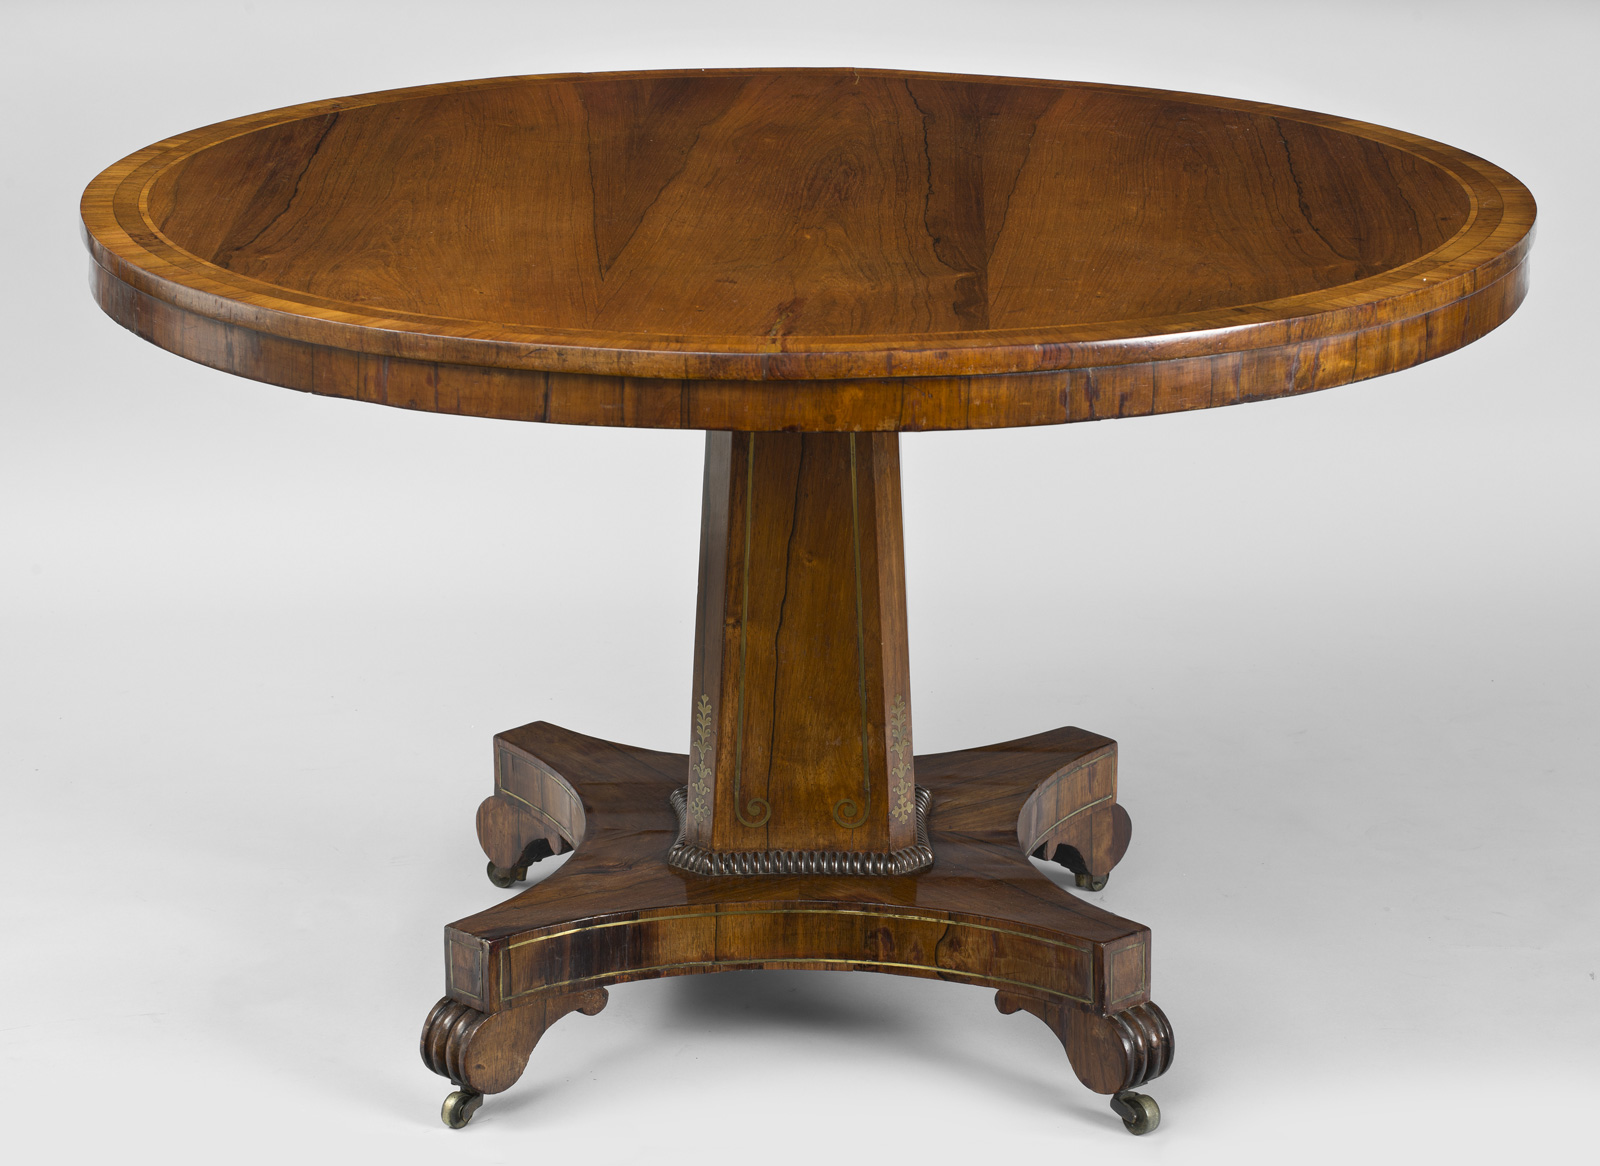 Charmant Antique English Regency Rosewood Center Table